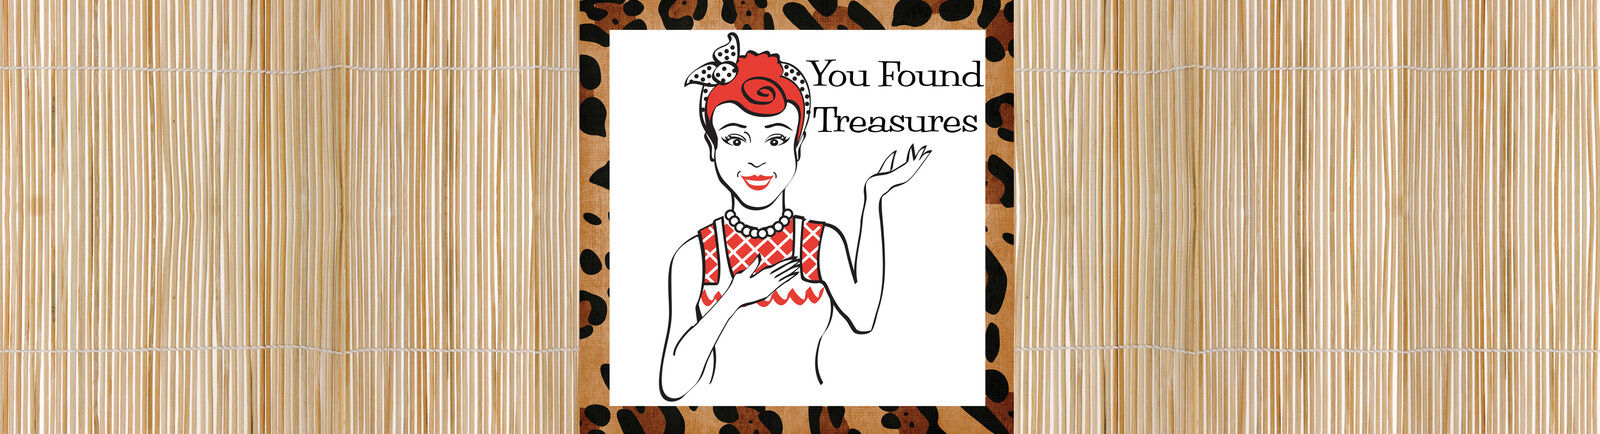 You Found Treasures